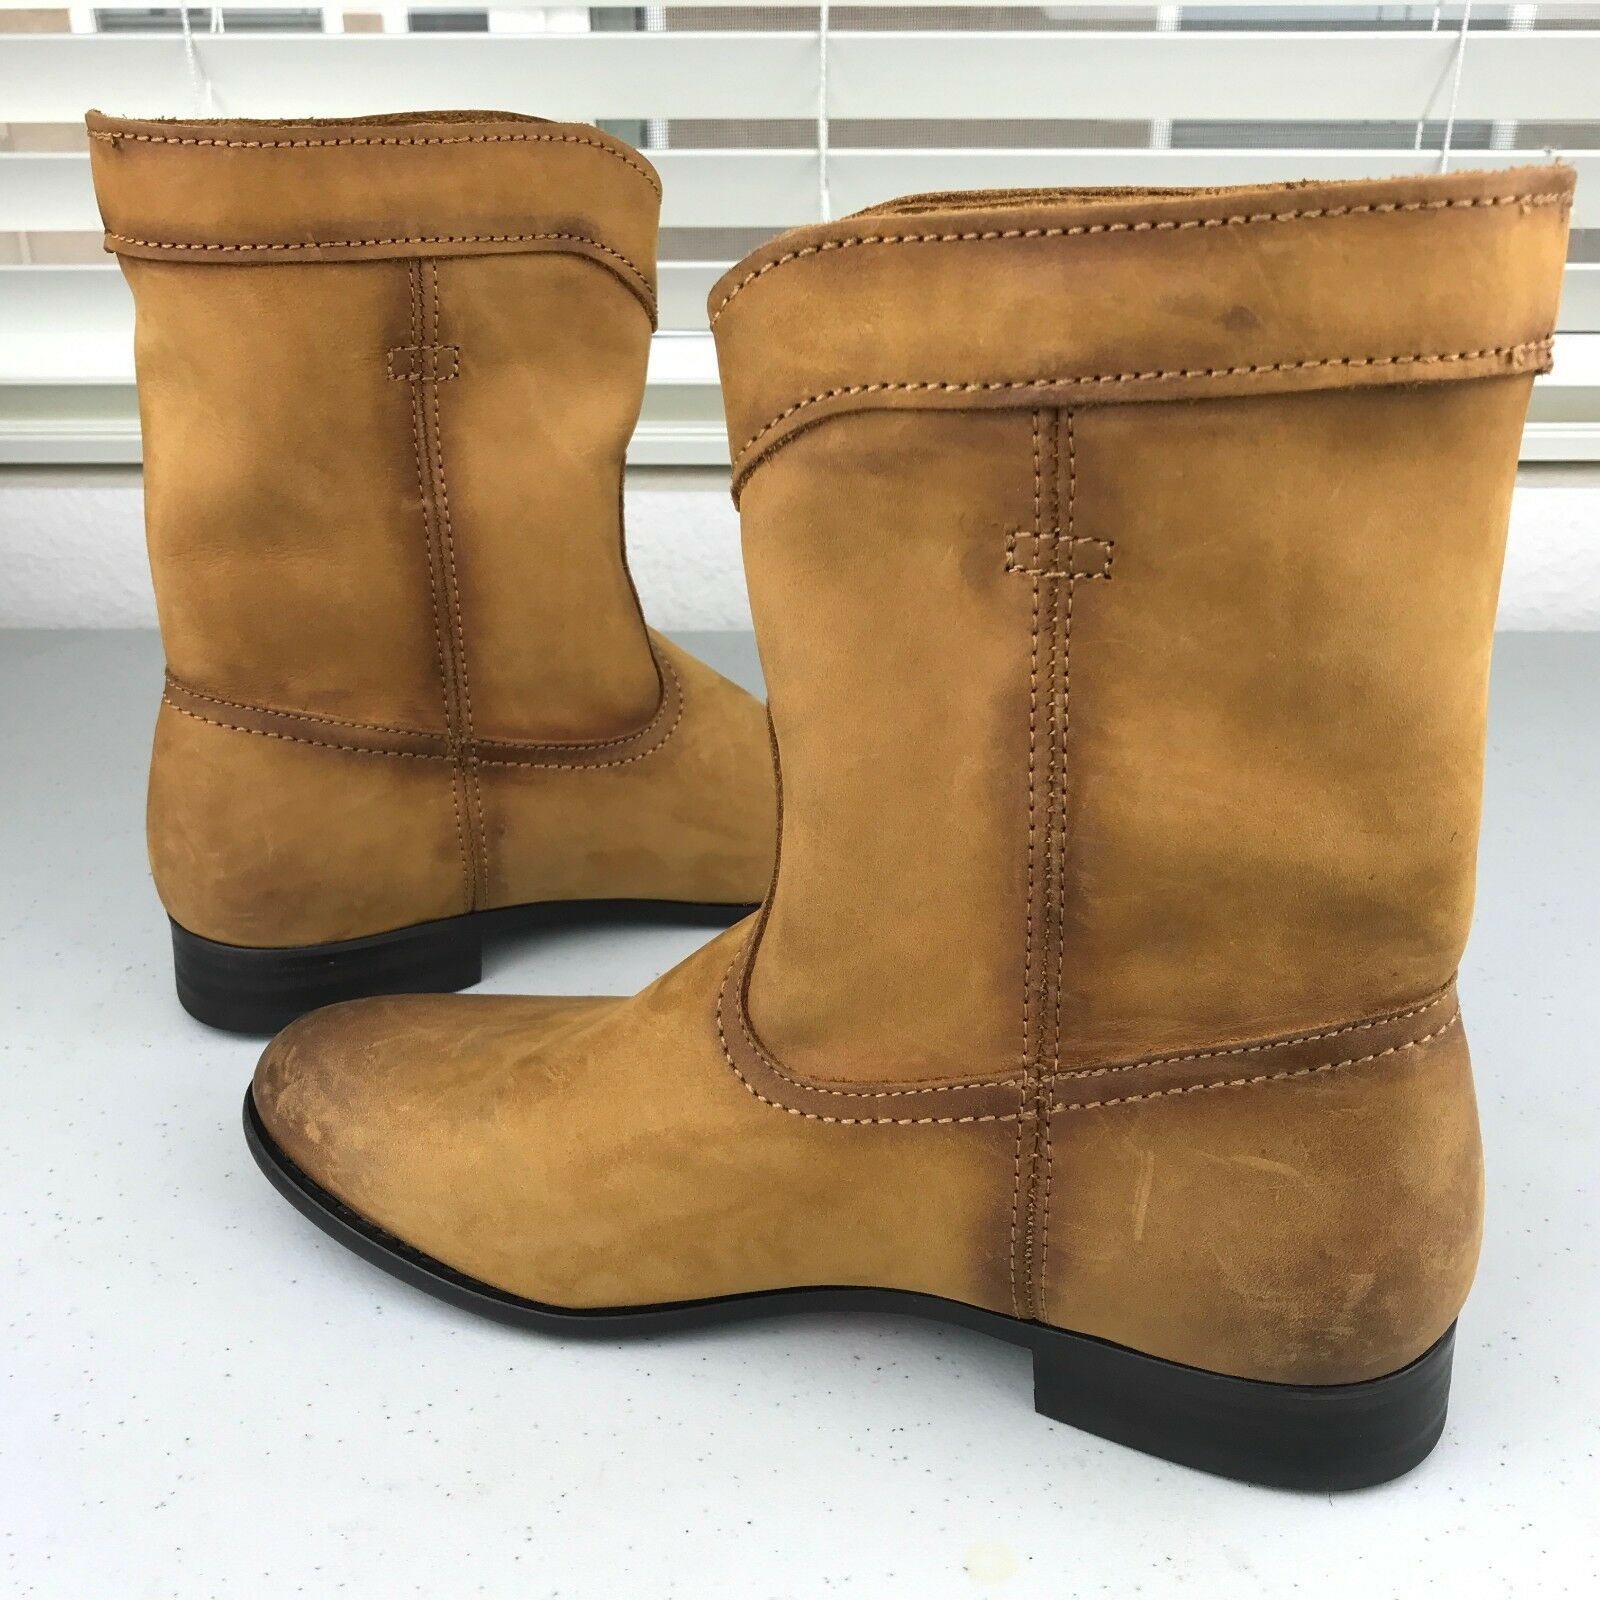 NEW Frye Womens Womens Womens Western Short Ankle Bootie Boots Cognac Distressed Sz 6 271ac0